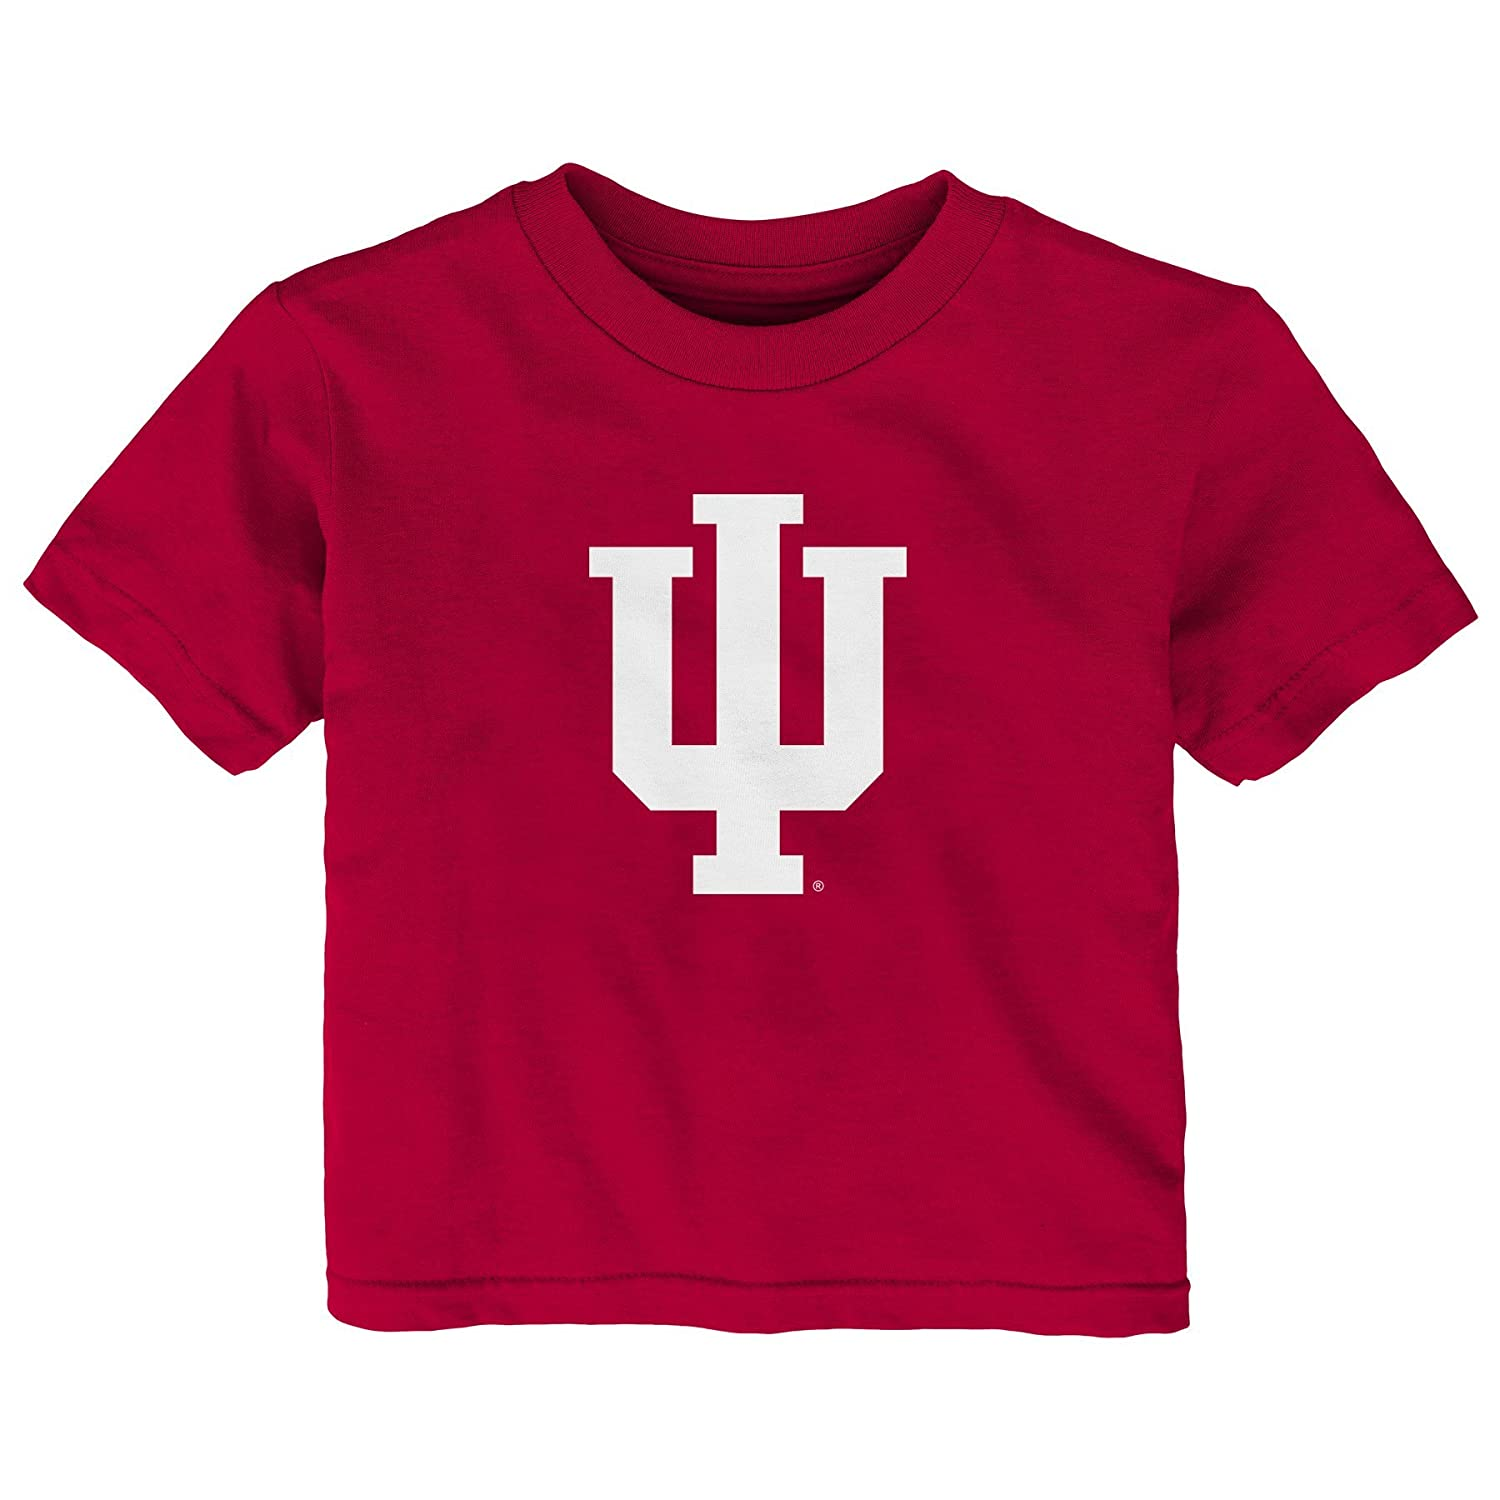 Outerstuff NCAA Indiana Hoosiers Infant Primary Logo Short Sleeve Tee 12 Months Dark Red